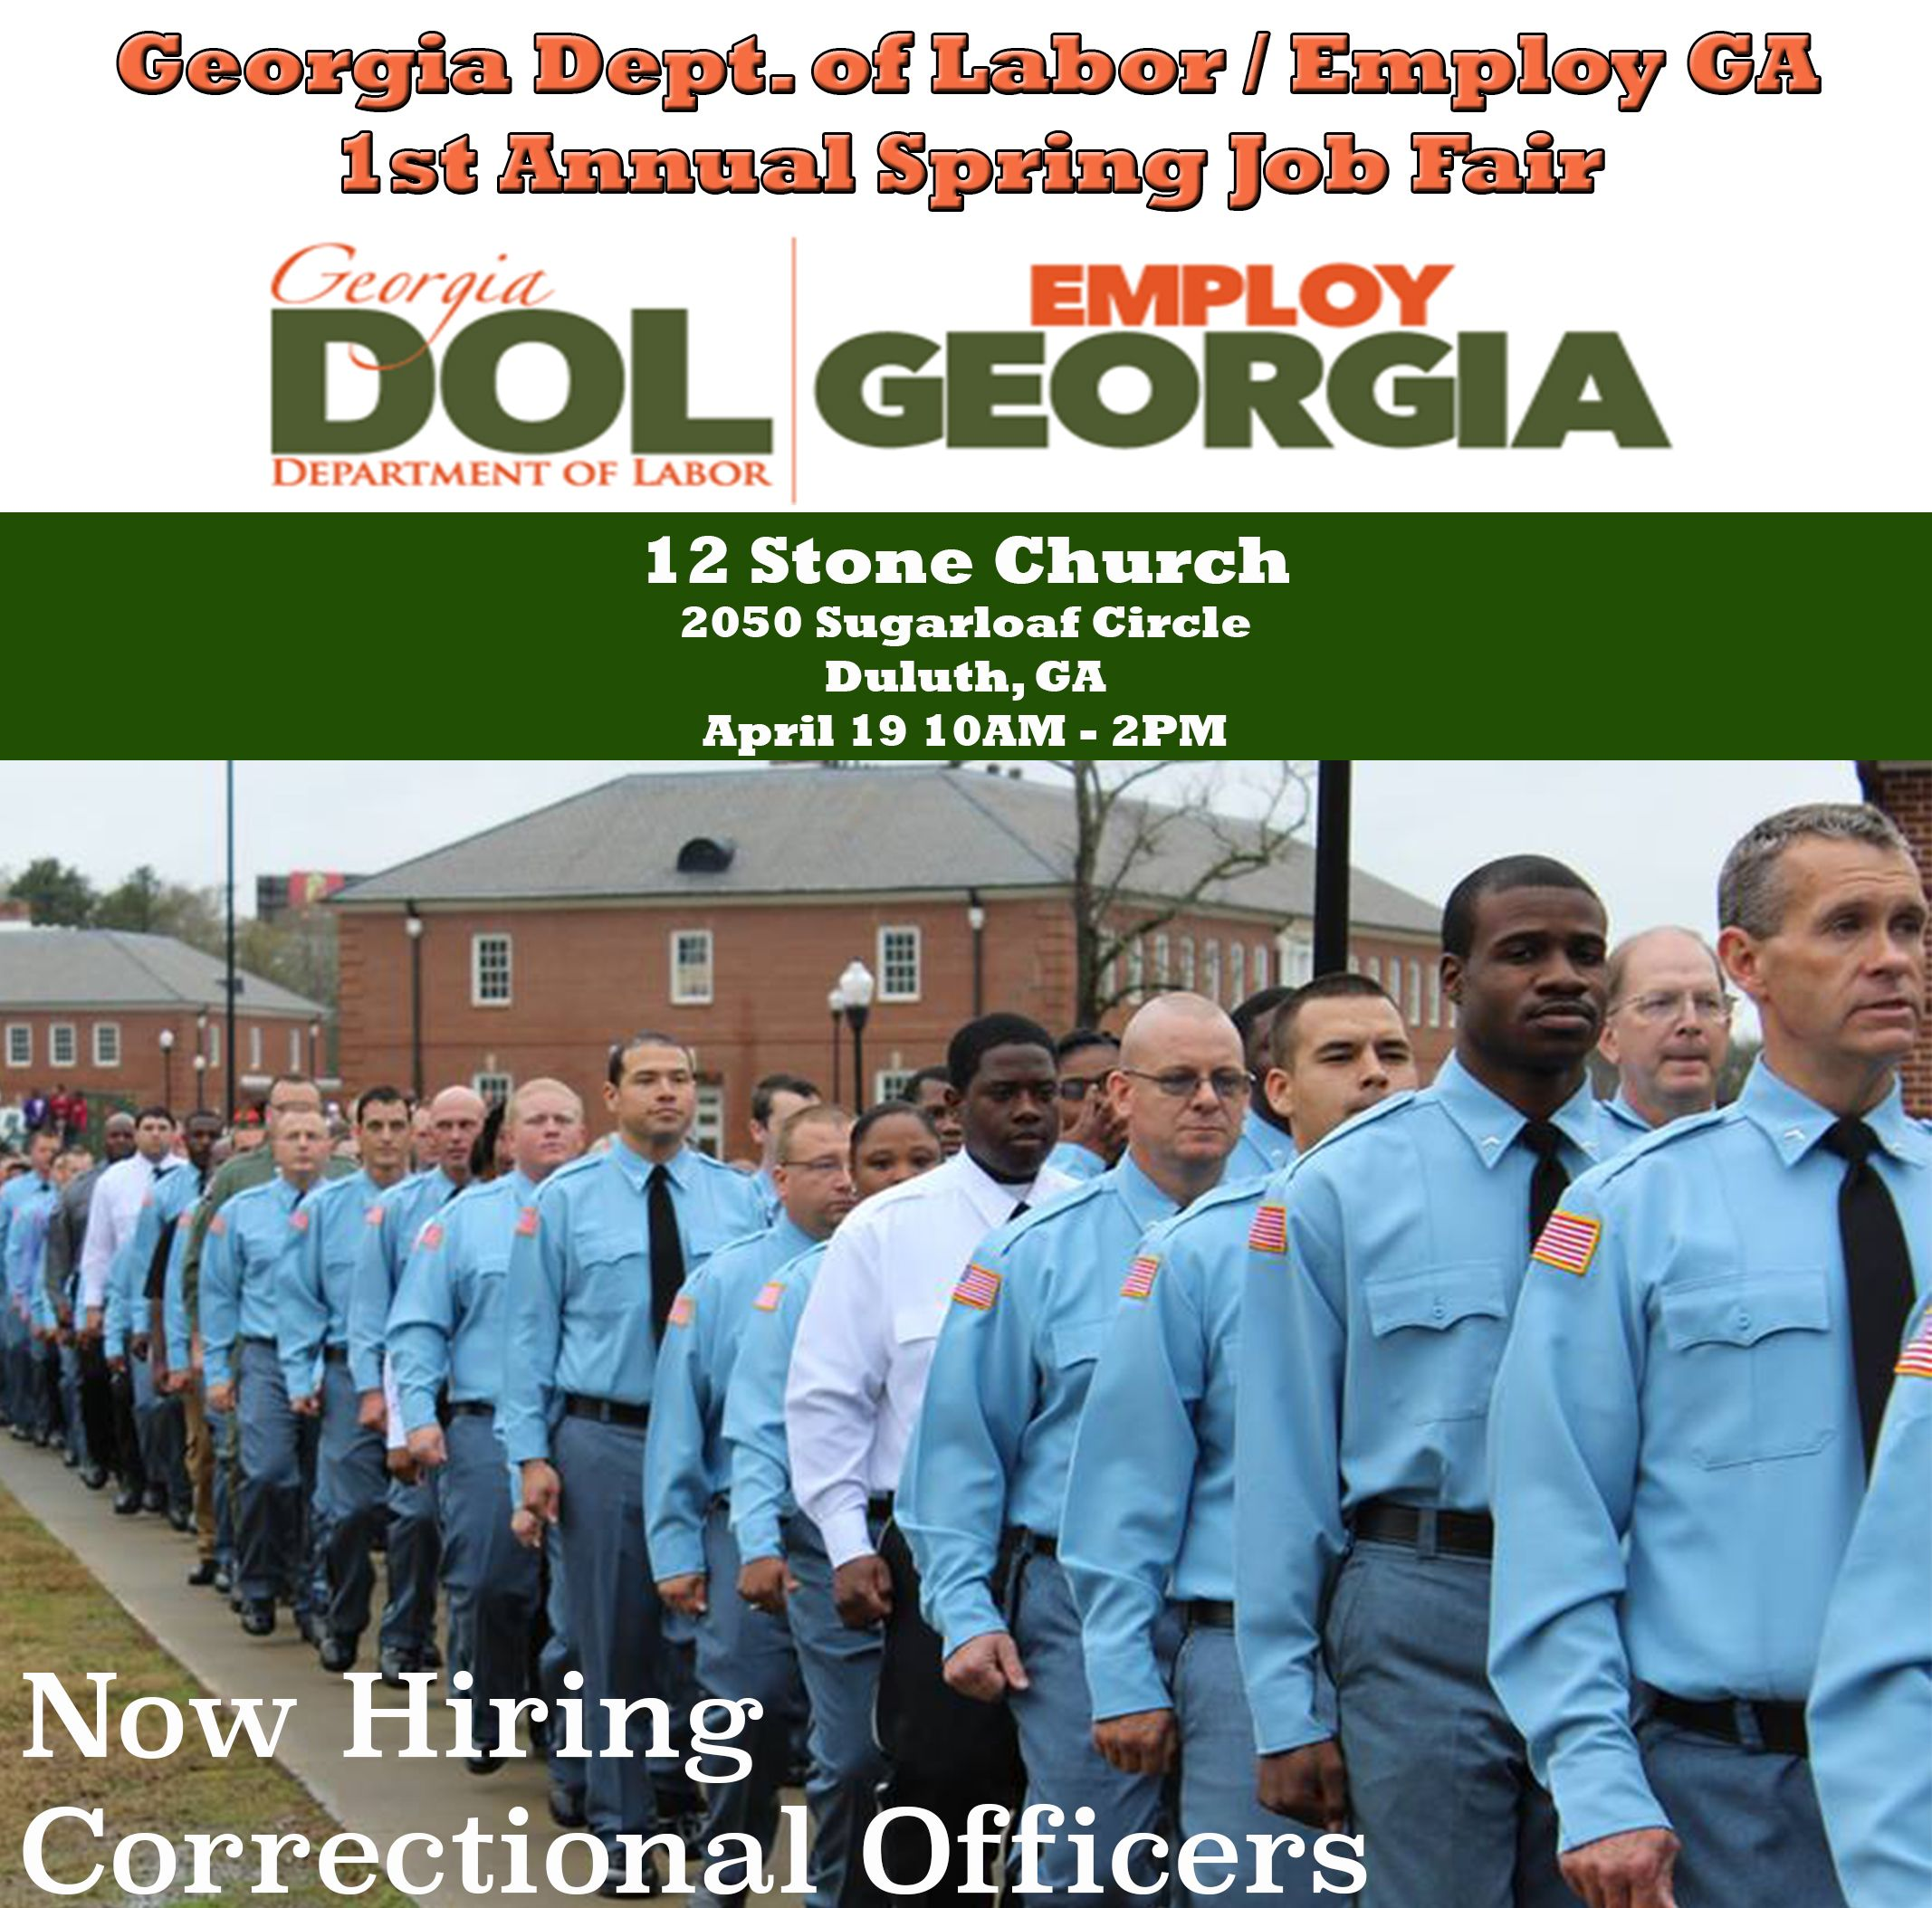 Hiring correctional officers we will be at 12 stone church in duluth ga april 19 for georgia - Correctional officer jobs ...